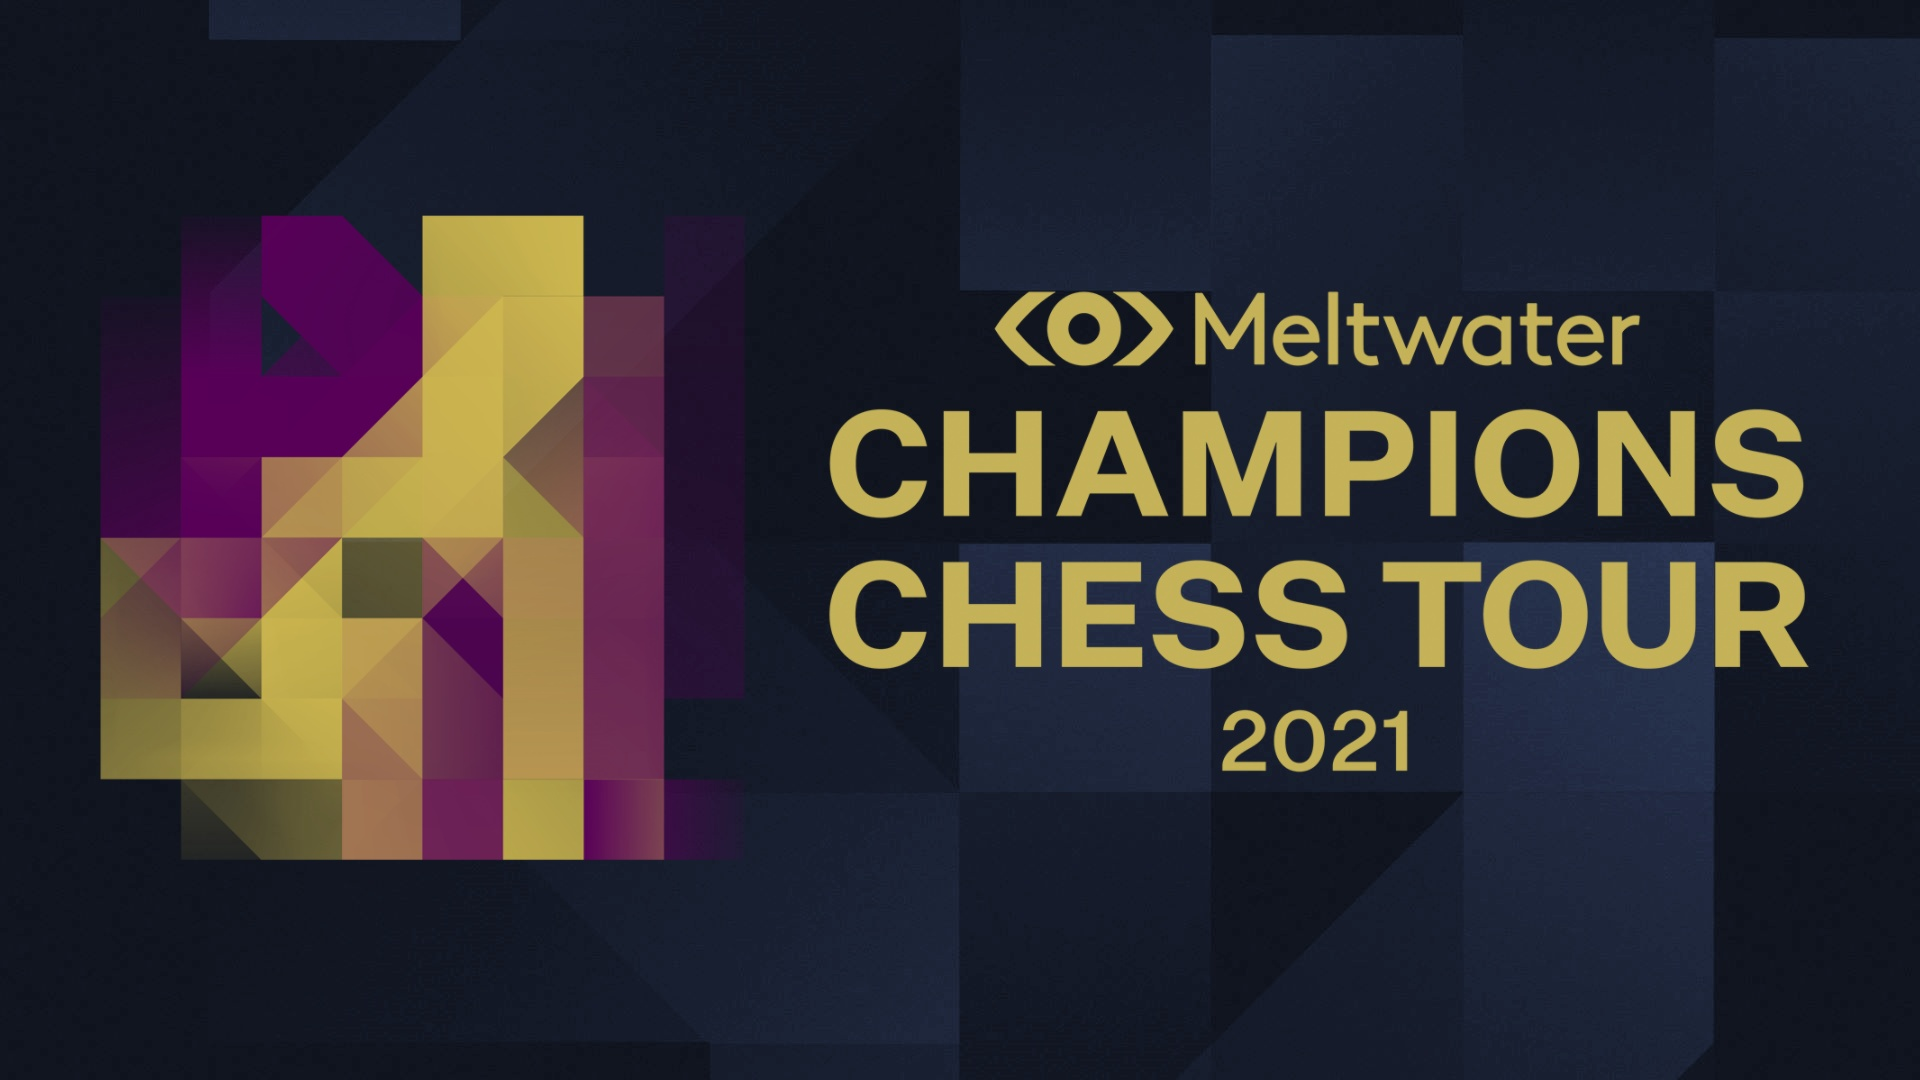 Meltwater revealed as new title partner for Champions Chess Tour    chess24.com